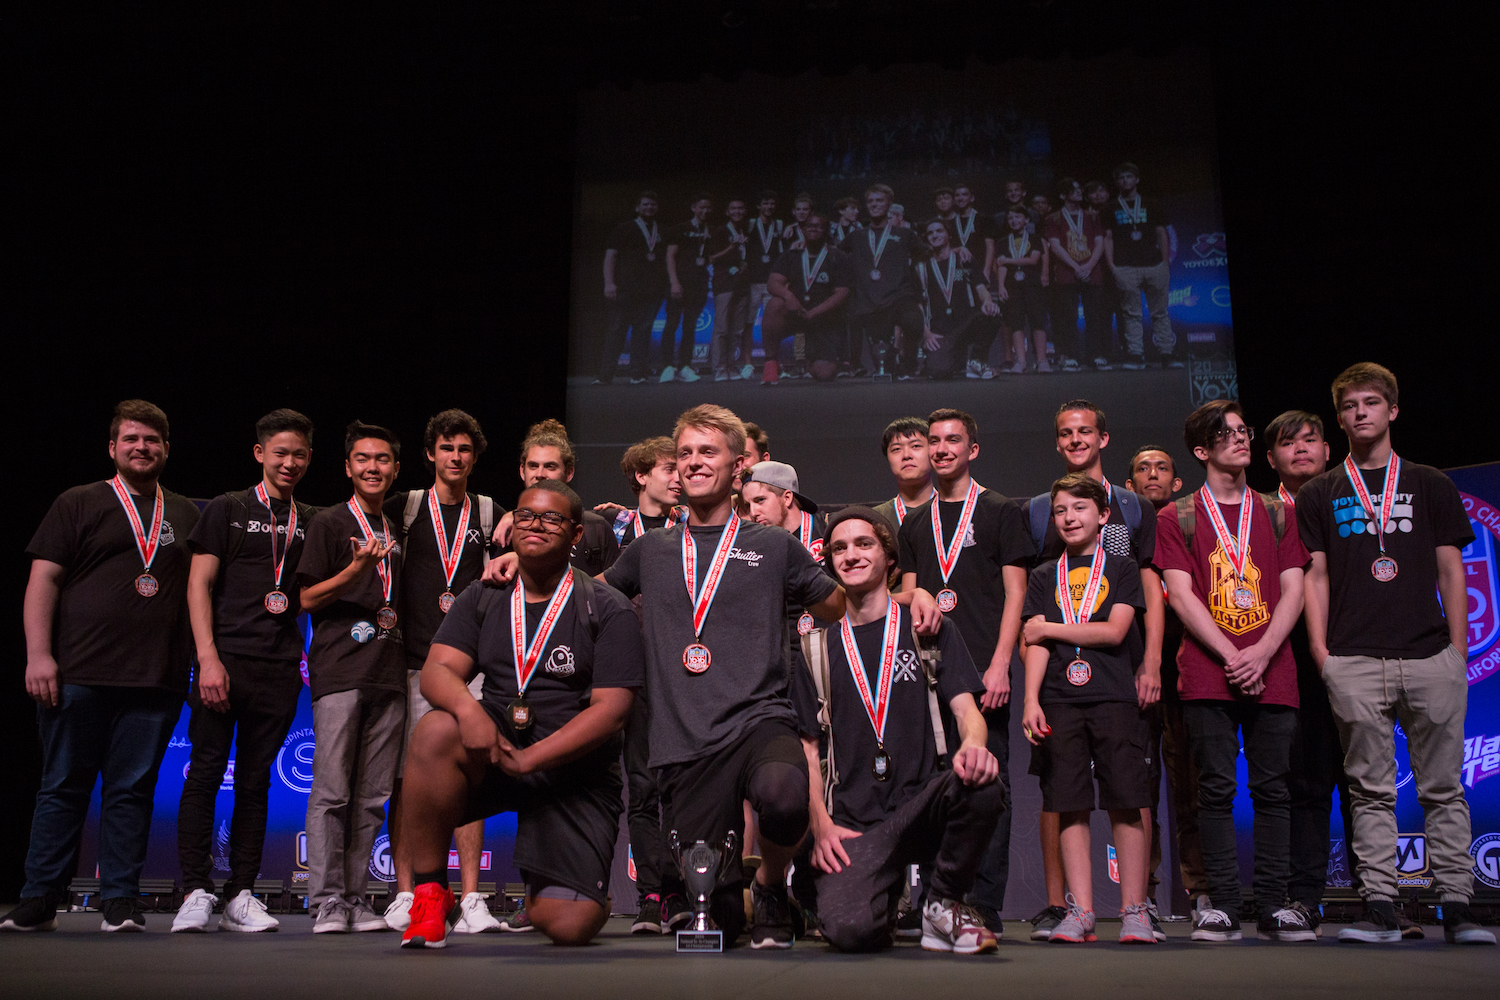 2016 US National YoYo Contest 1A Winners / Photo by Alec Campbell